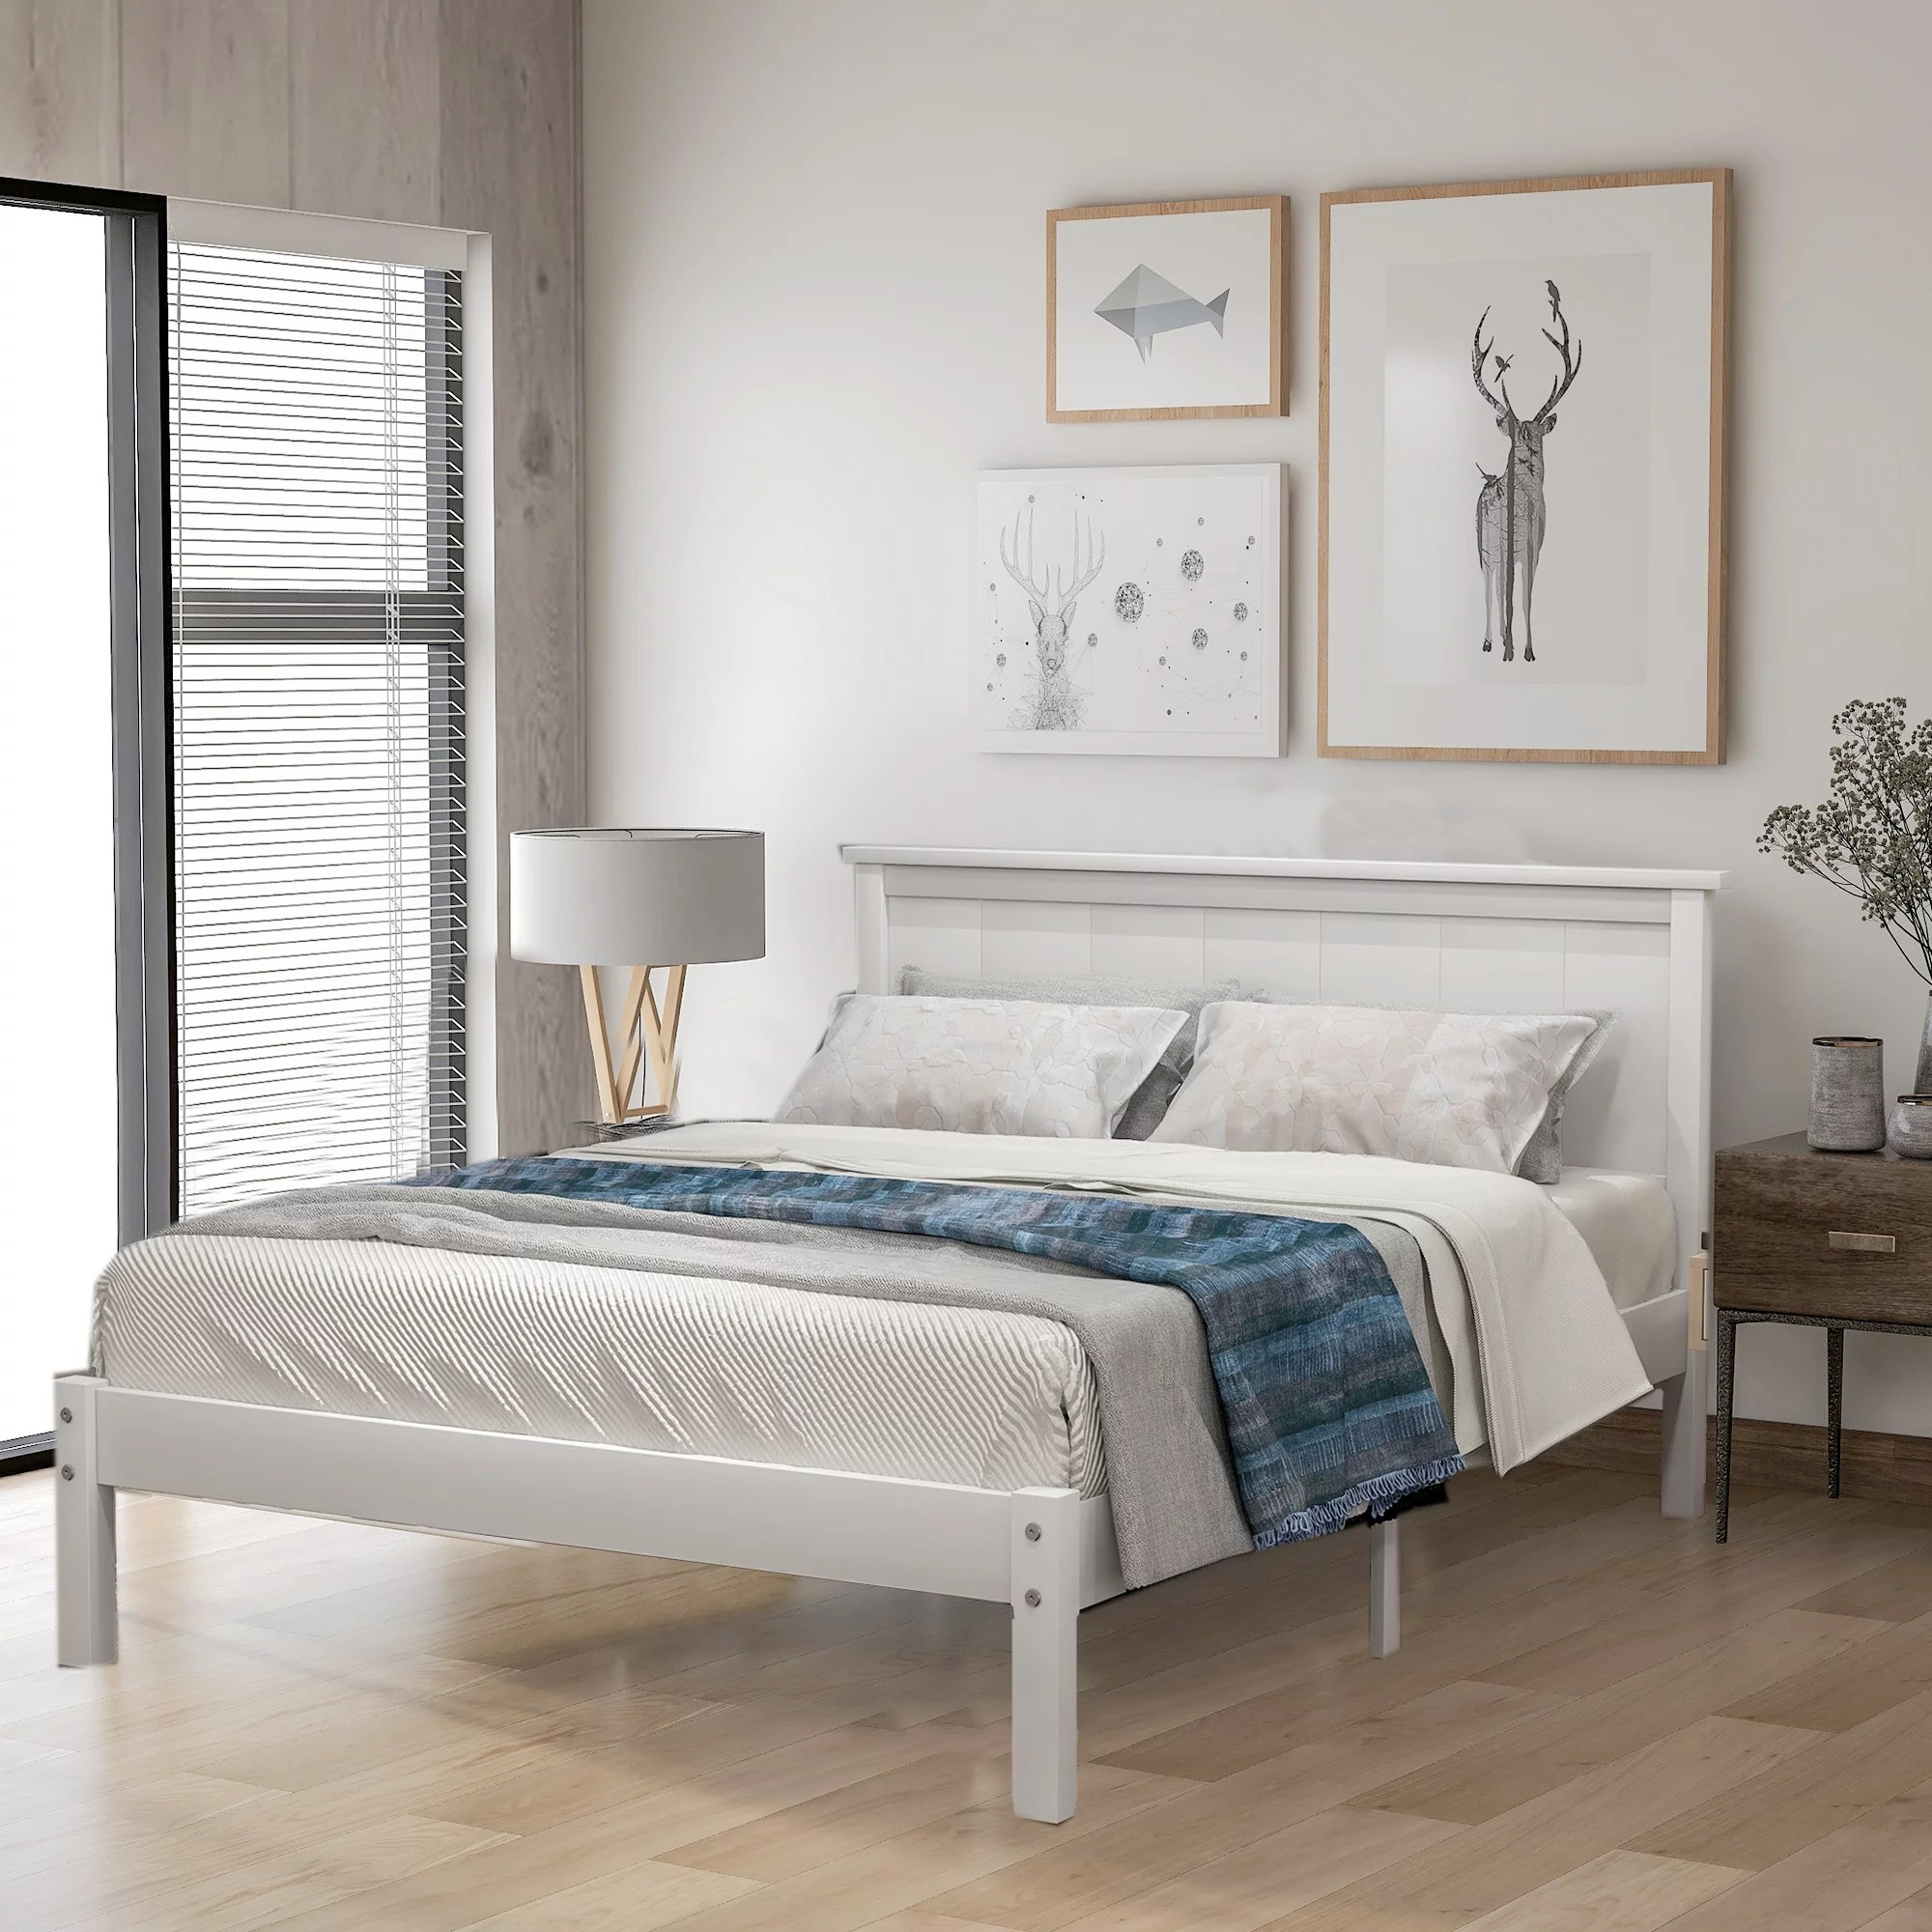 clearance twin platform bed frame newest wooden twin bed on walmart bedroom furniture clearance id=38422